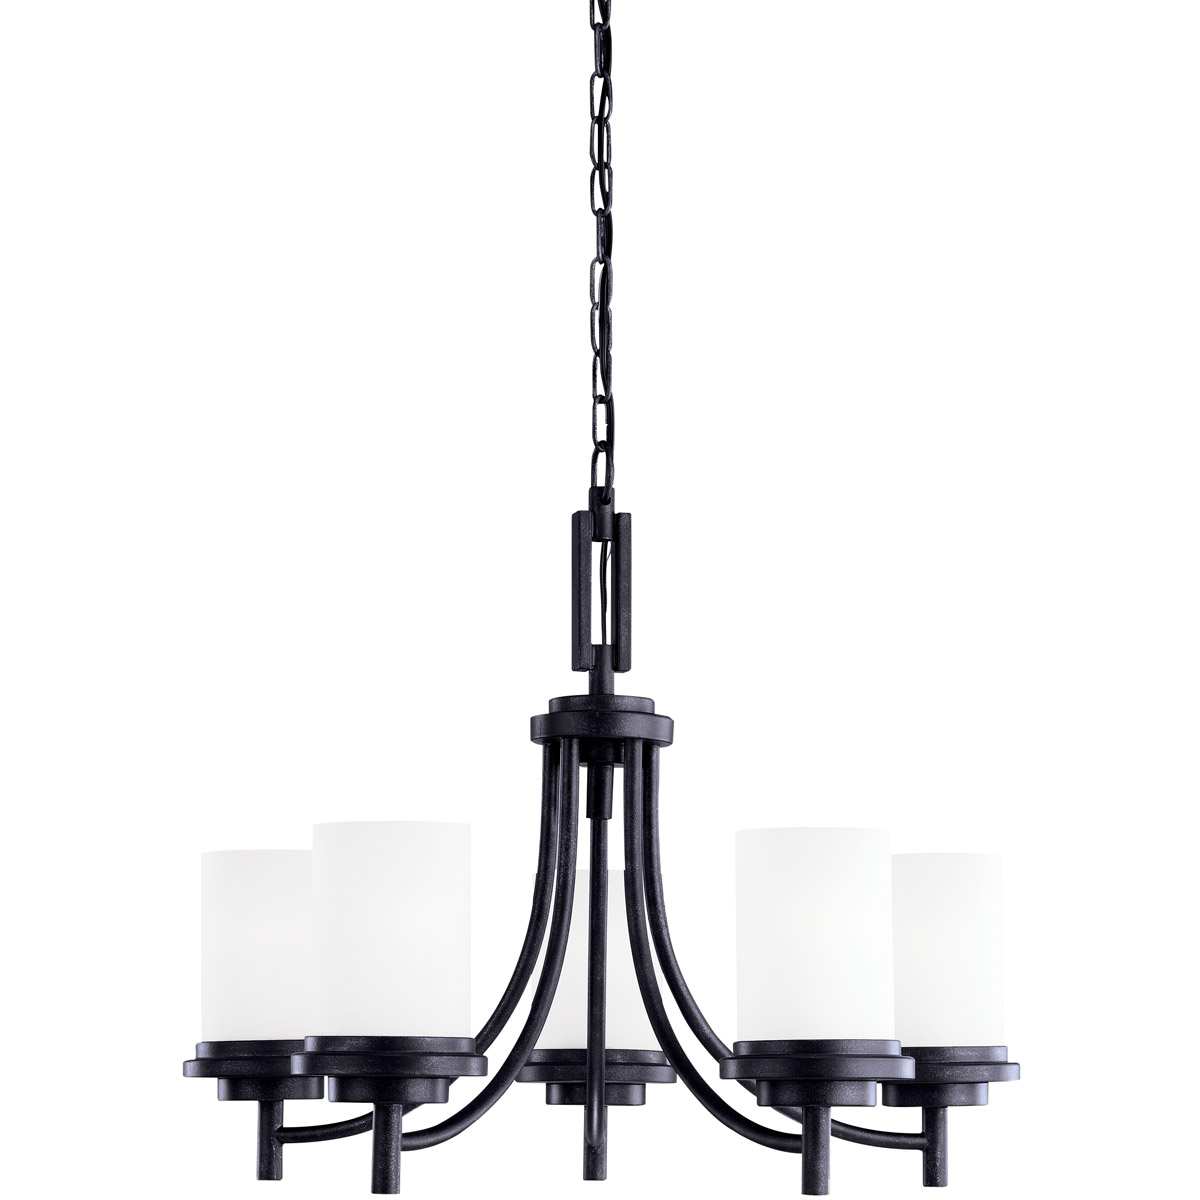 Sea Gull Lighting Winnetka 5 Light Chandelier in Blacksmith 31661-839